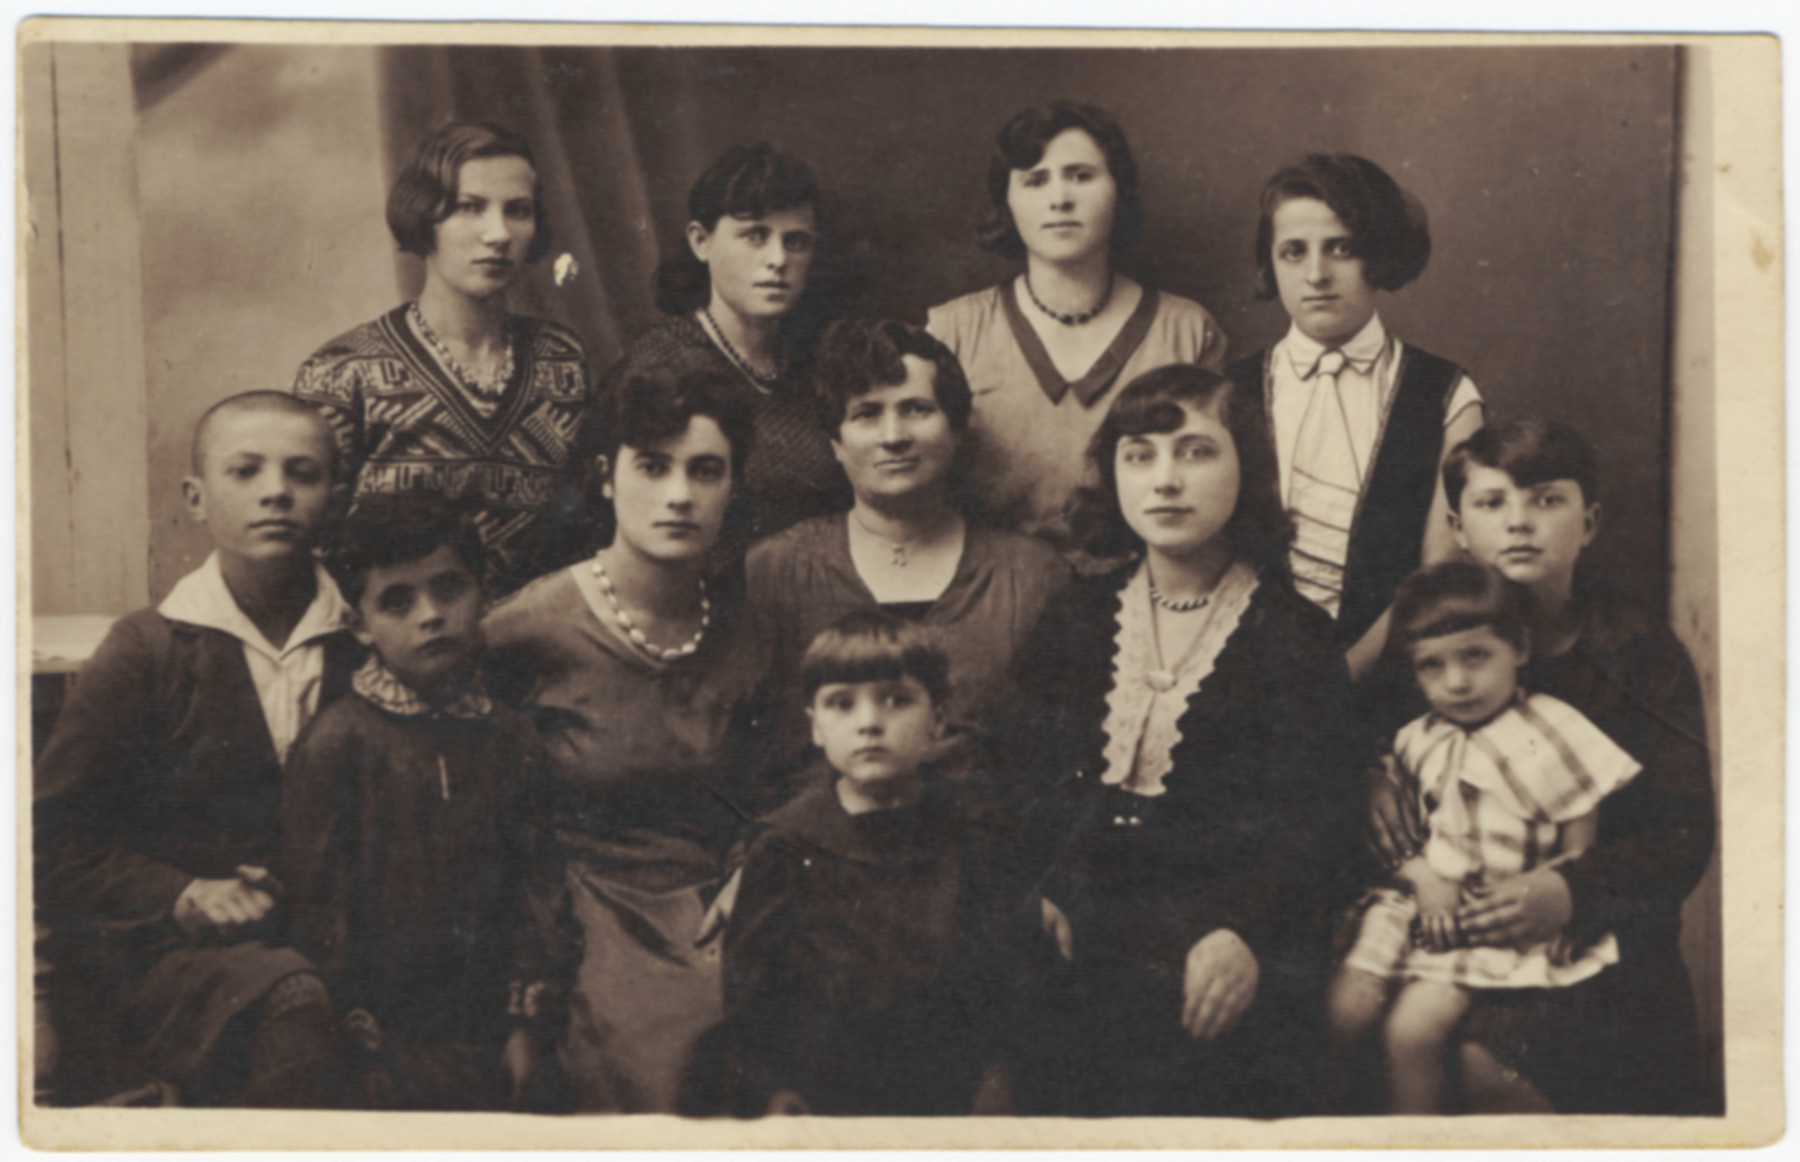 Studio portrait of an extended prewar Jewish family in Poland taken at a wedding.   Pictured are members of the Beker family.  Only two of those pictured suvived: Haya Beker Kleinhandler is in the middle (She is the oldest sister of Manya's mother).  Manya Moskowicz is standing on in the front, second from the left.  (Her mother is not pictured since she was pregnant with her youngest child.)